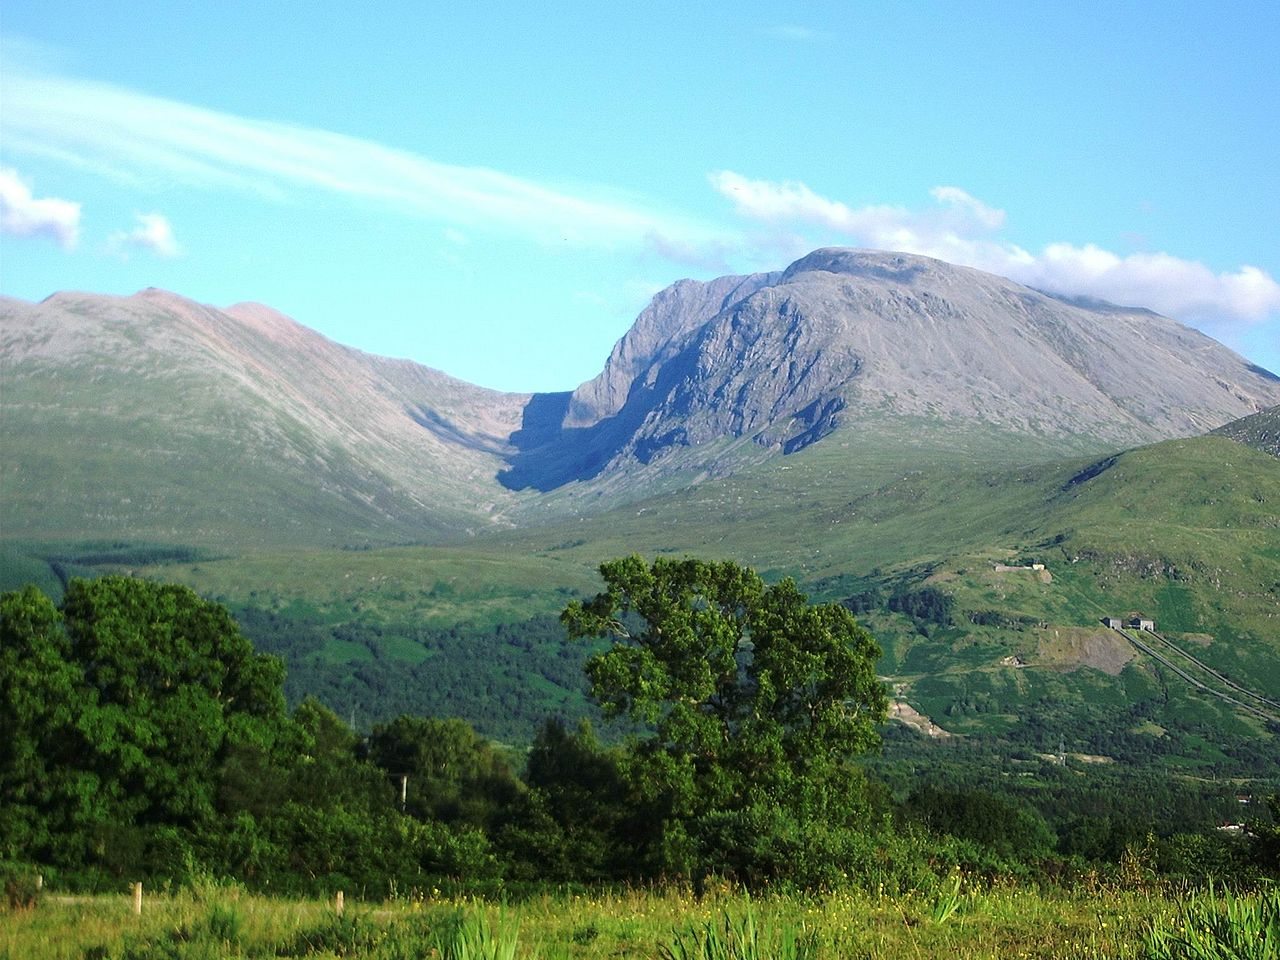 Ben Nevis. Fot. Thincat/Wikimedia Commons